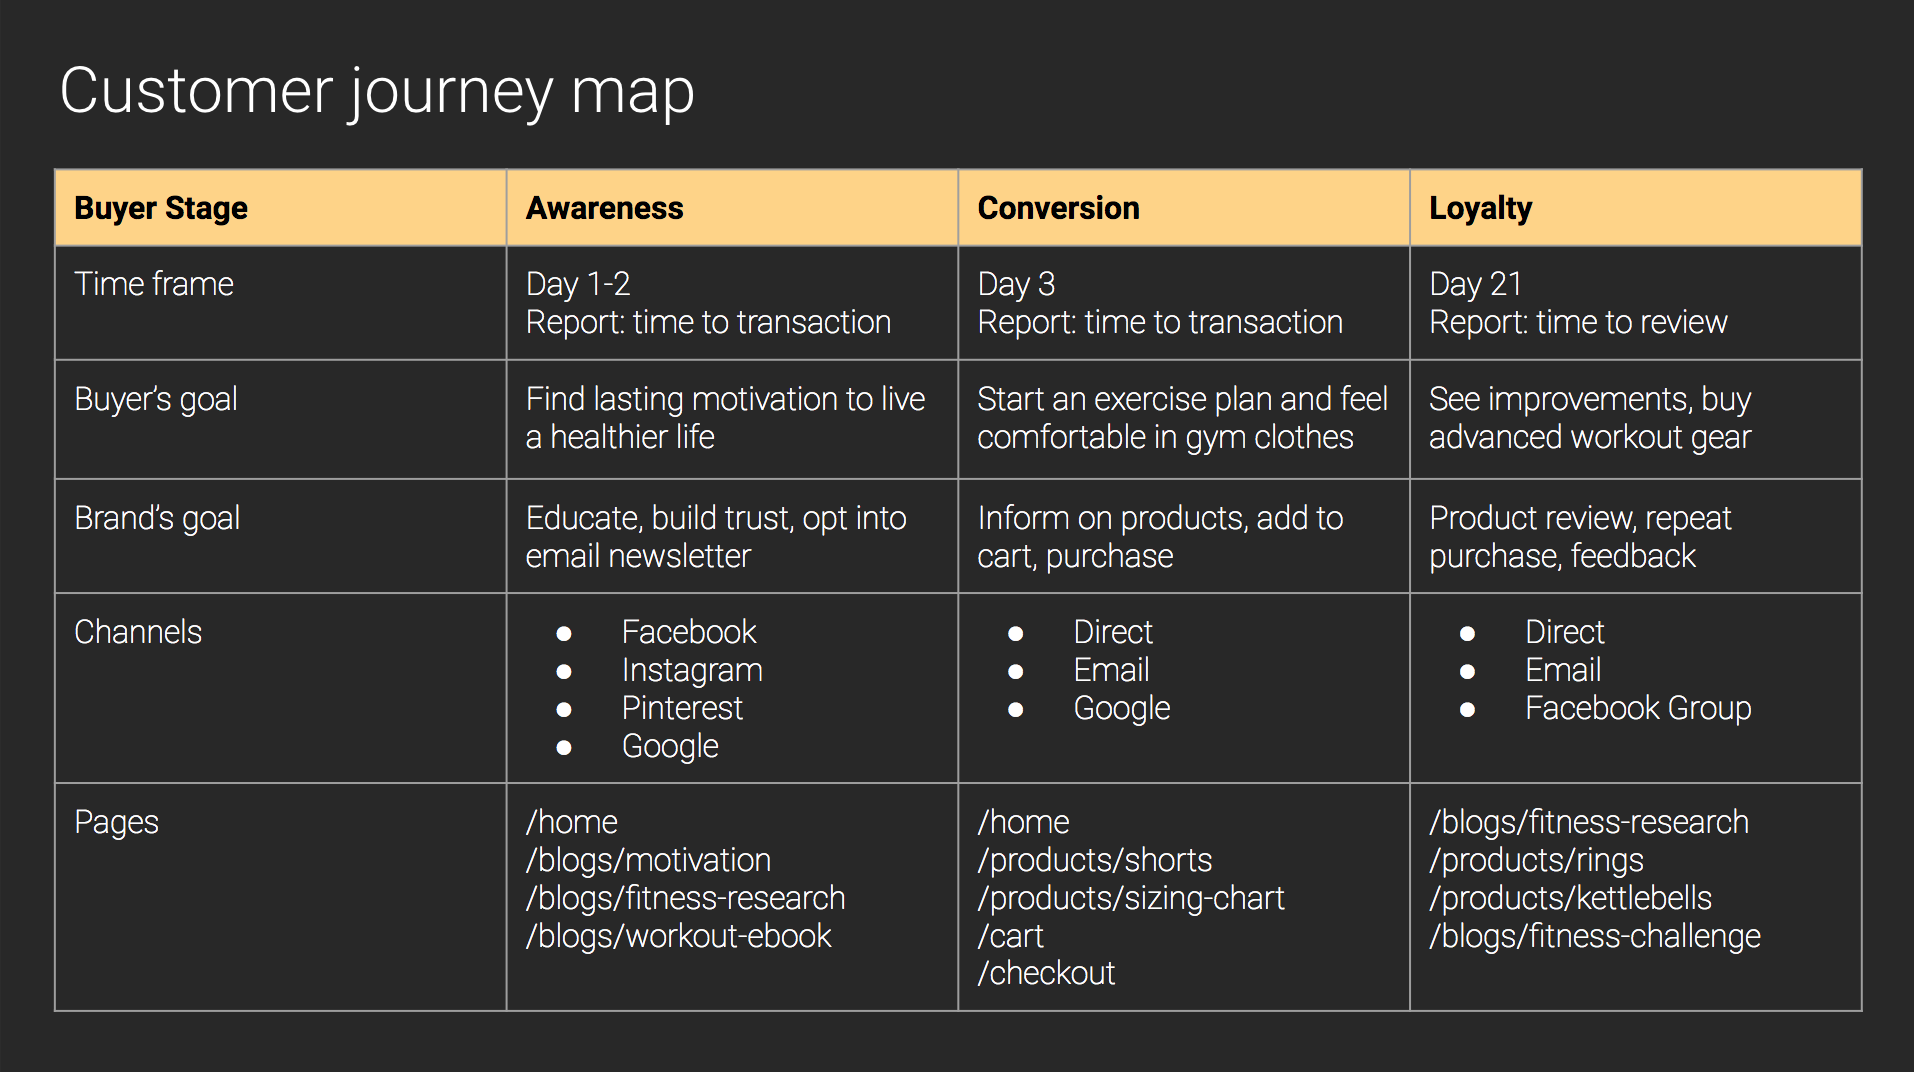 How To Map A Customer Journey In Ecommerce With Templates - Customer journey map template